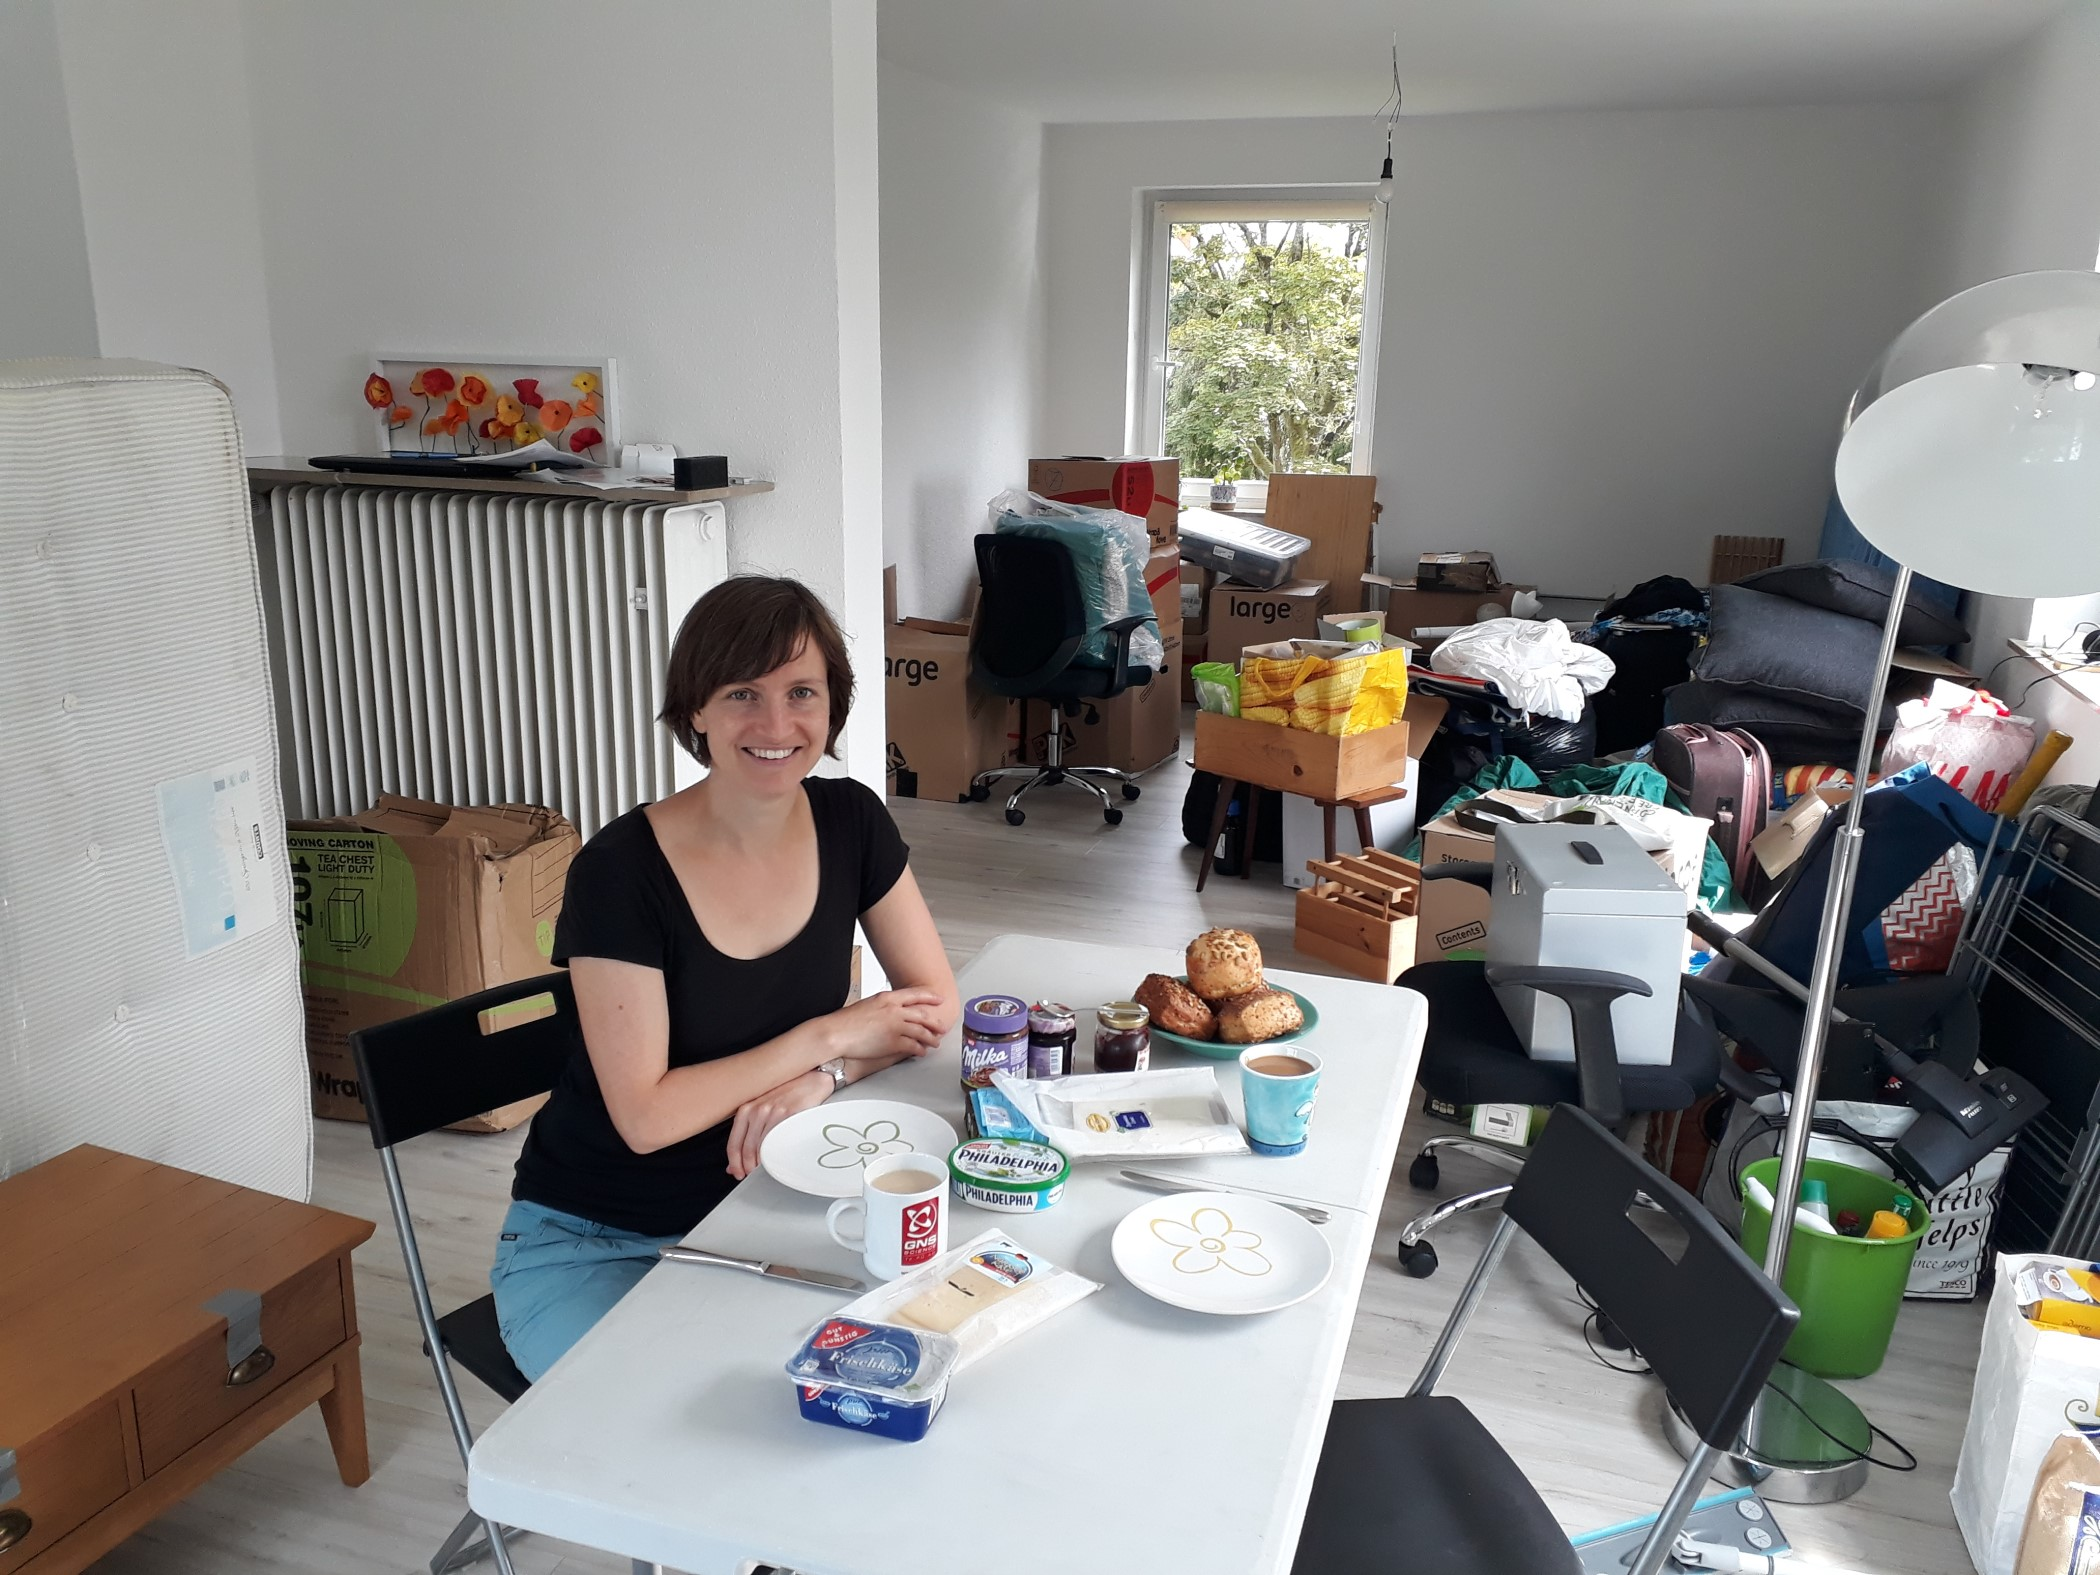 Furniture moved from England to Germany